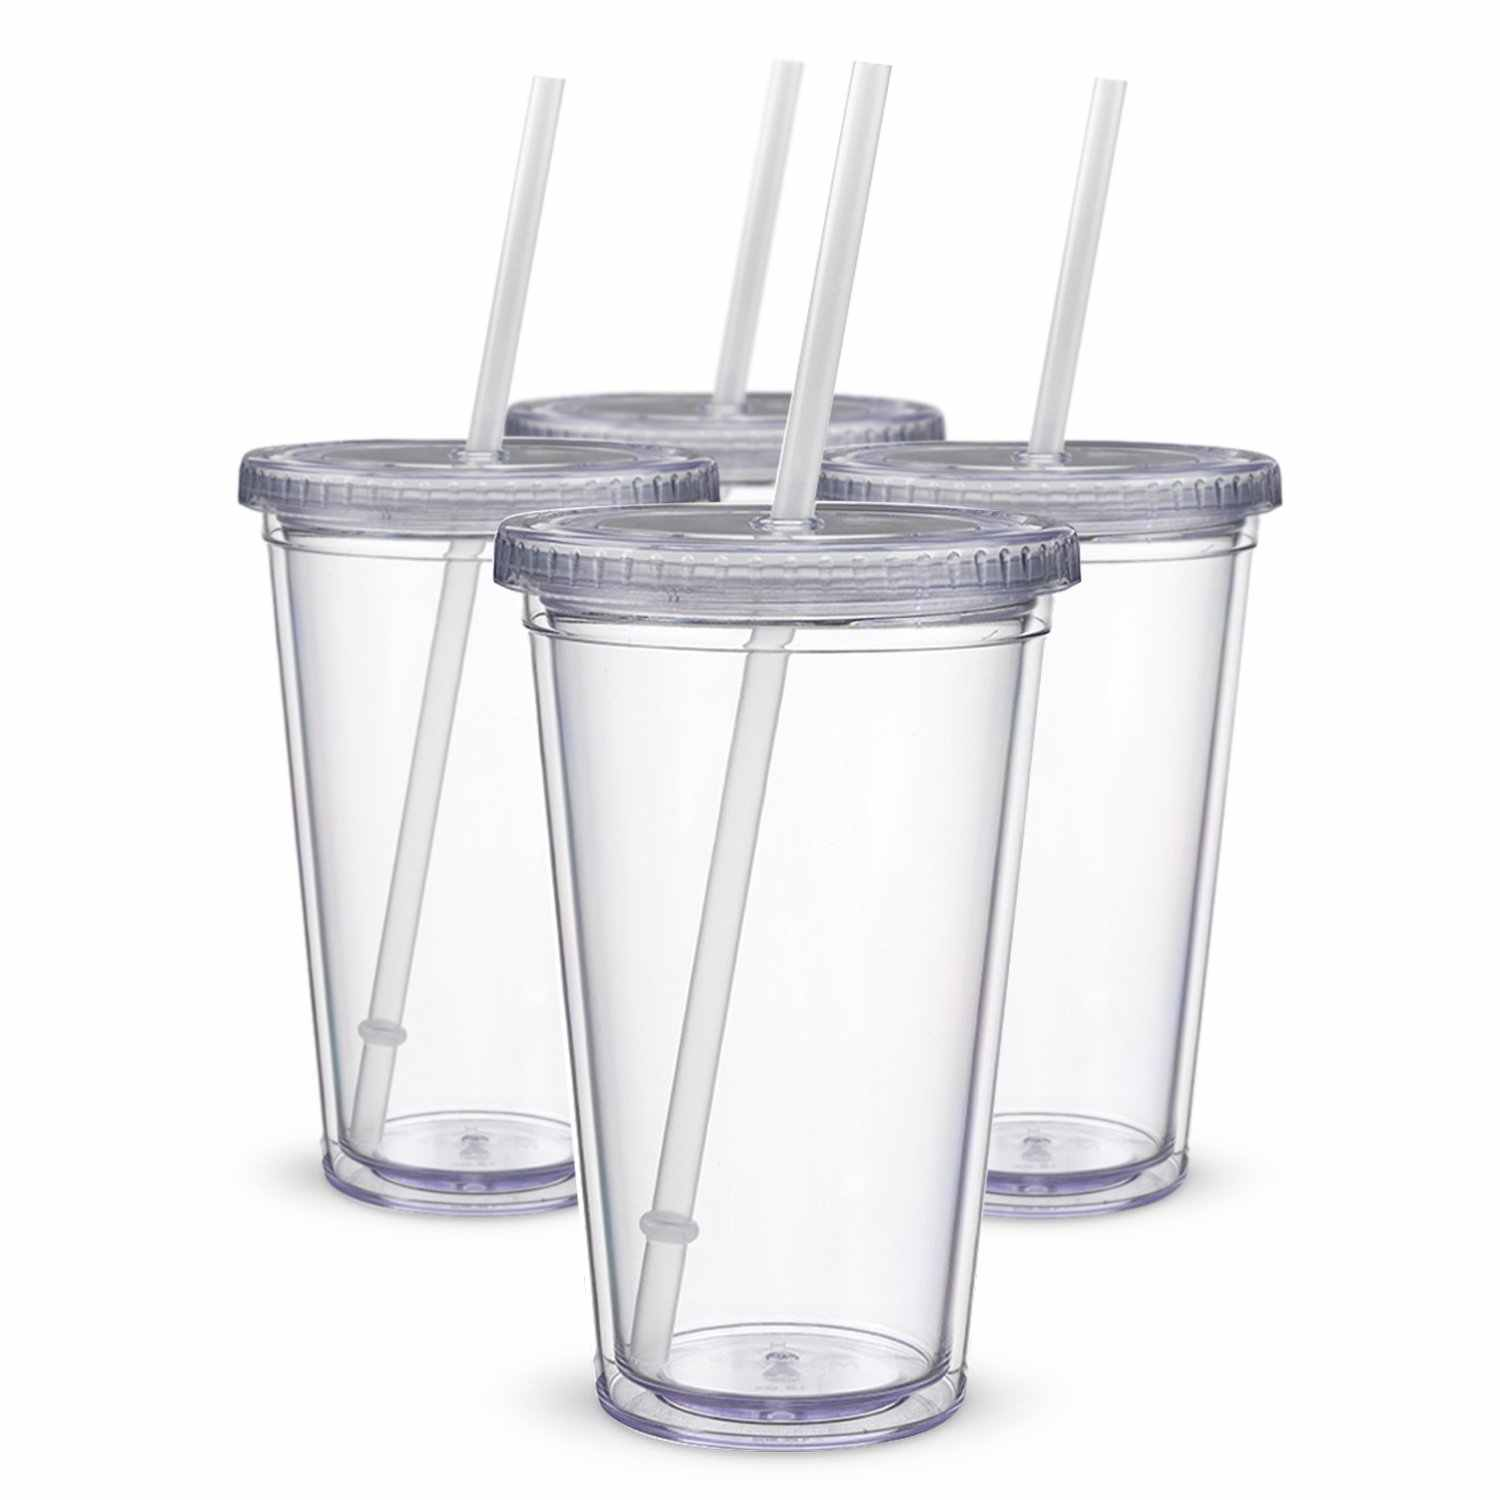 Classic Insulated Tumblers 16 oz. Double Wall Acrylic 4 pack Straw Type Water Bottles Clear Drinking Cups